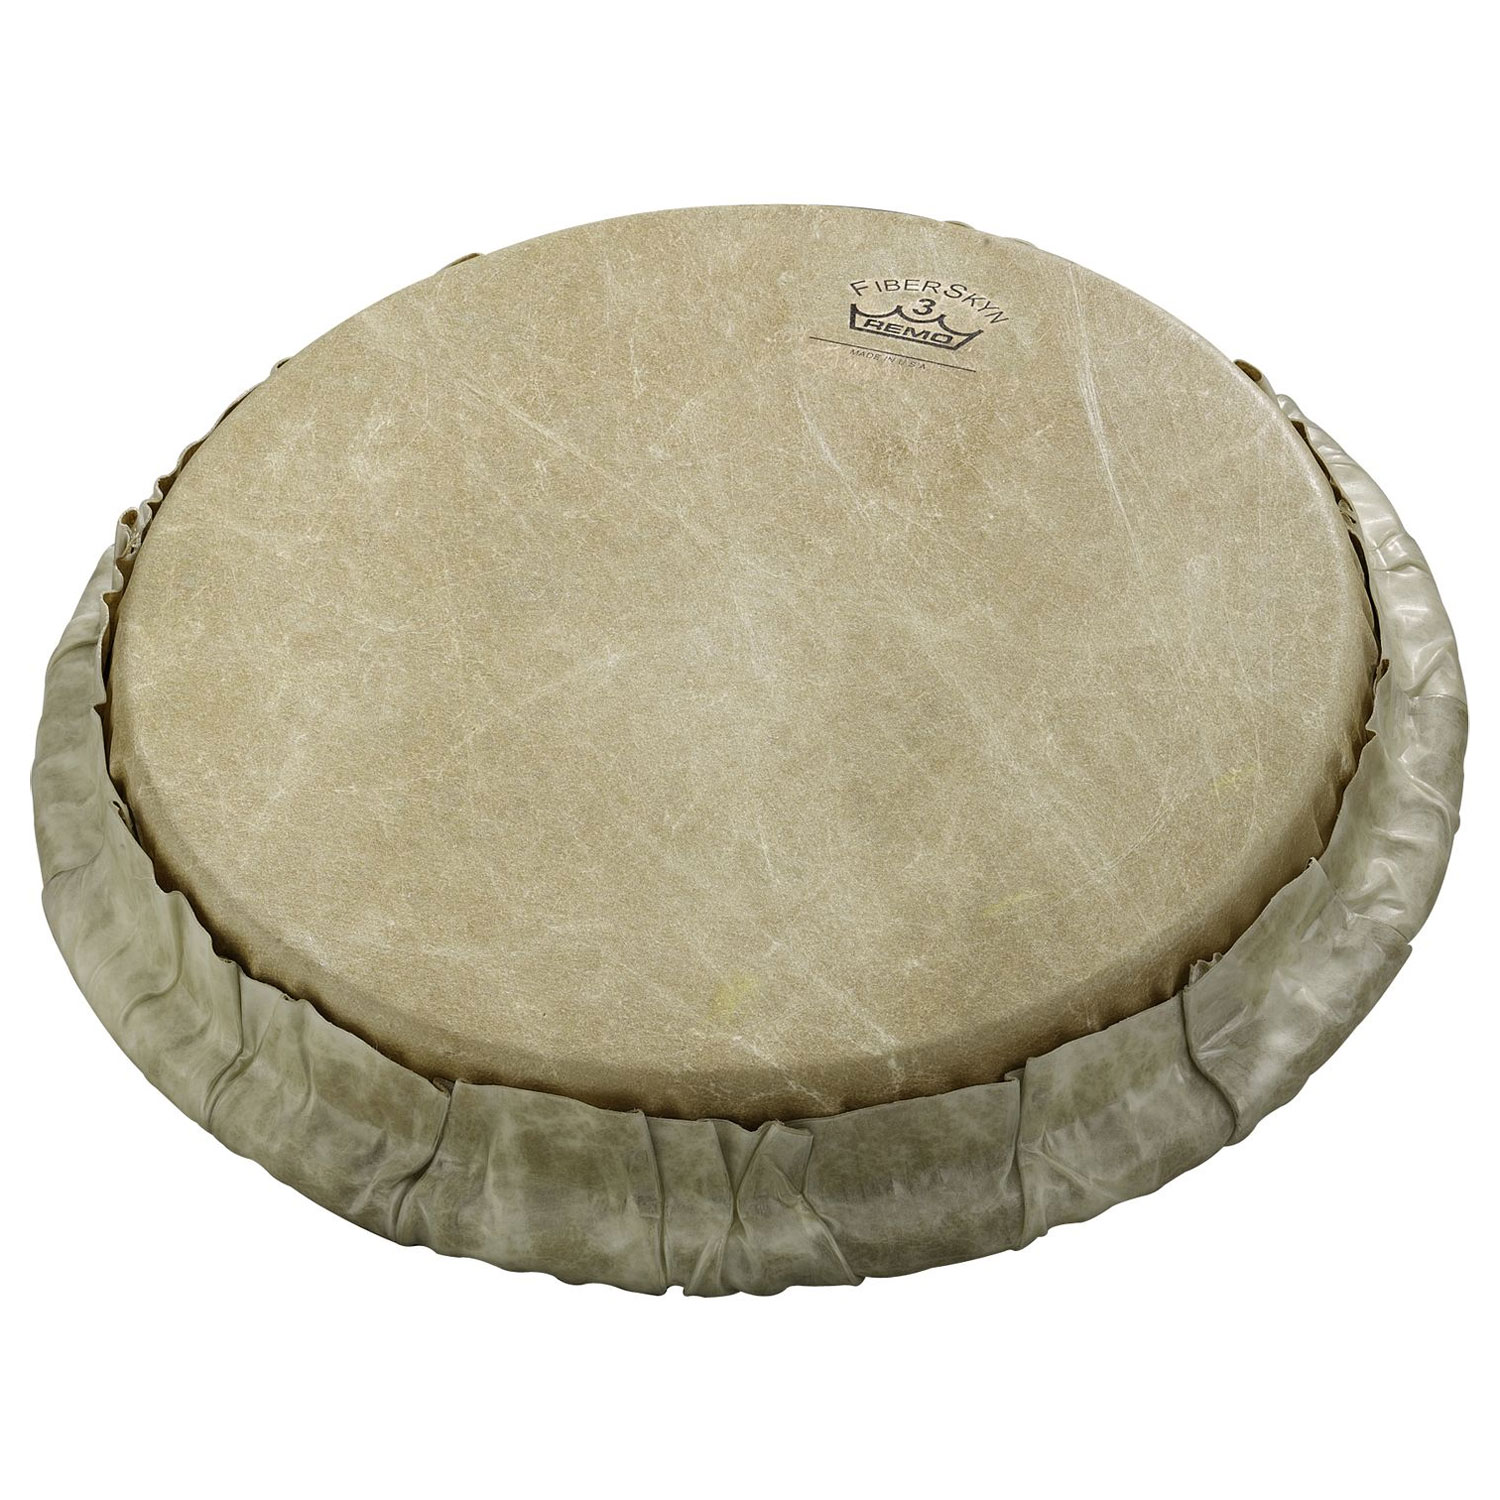 """Remo 9"""" Tucked Skyndeep Bongo Drum Head with Calfskin Graphic"""